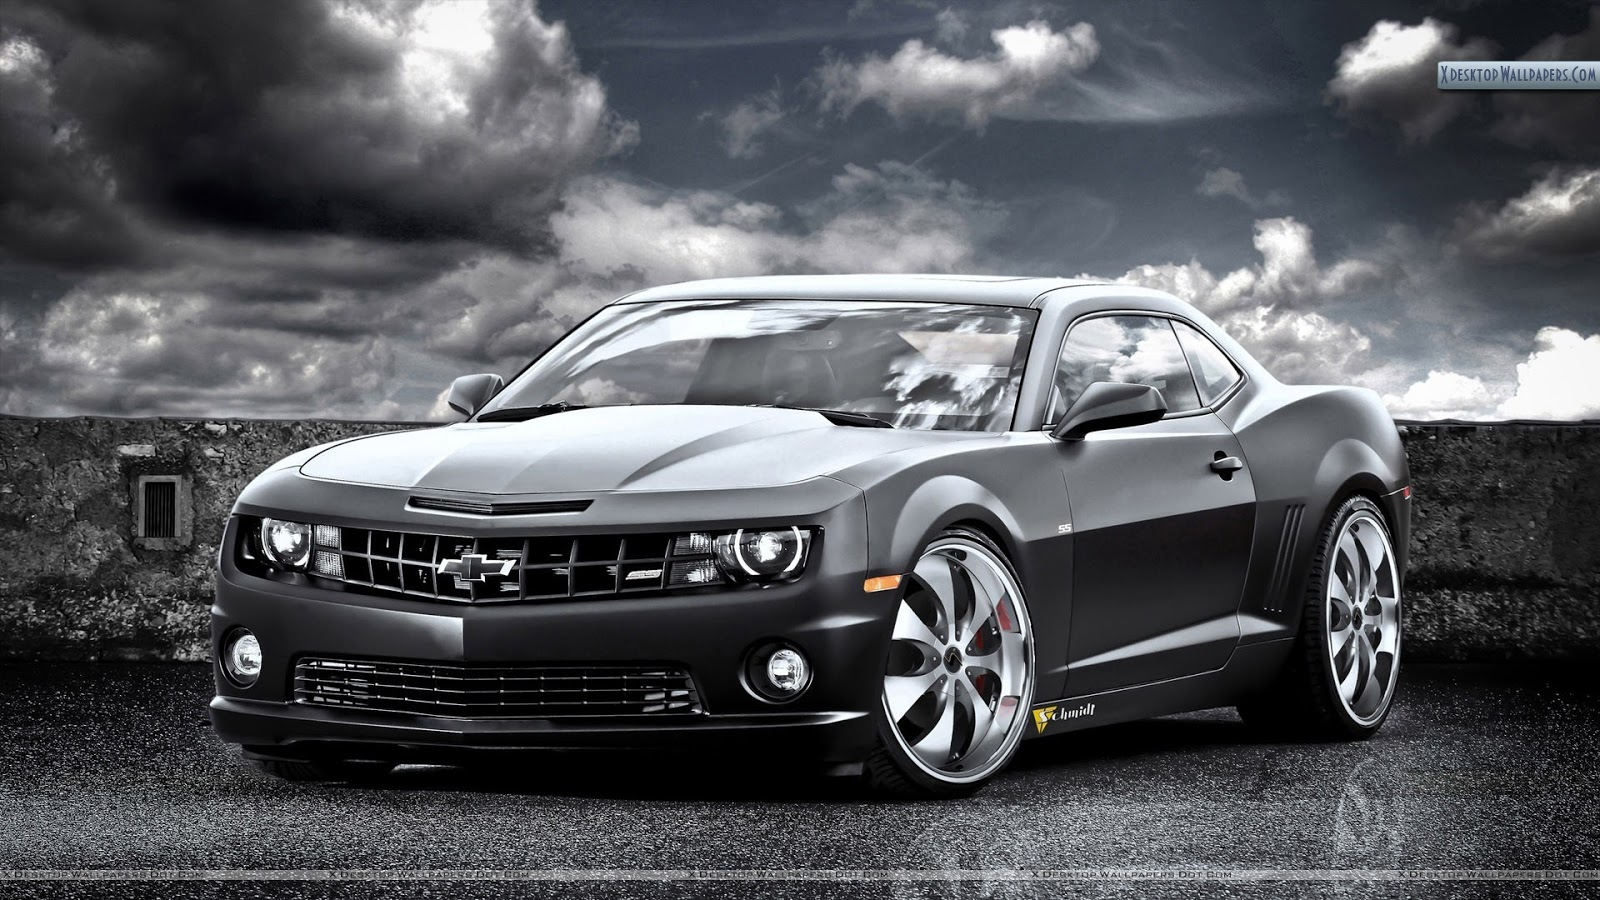 2019 Chevrolet Camaro 1LE Review - New Cars Reviews for 2017 ...